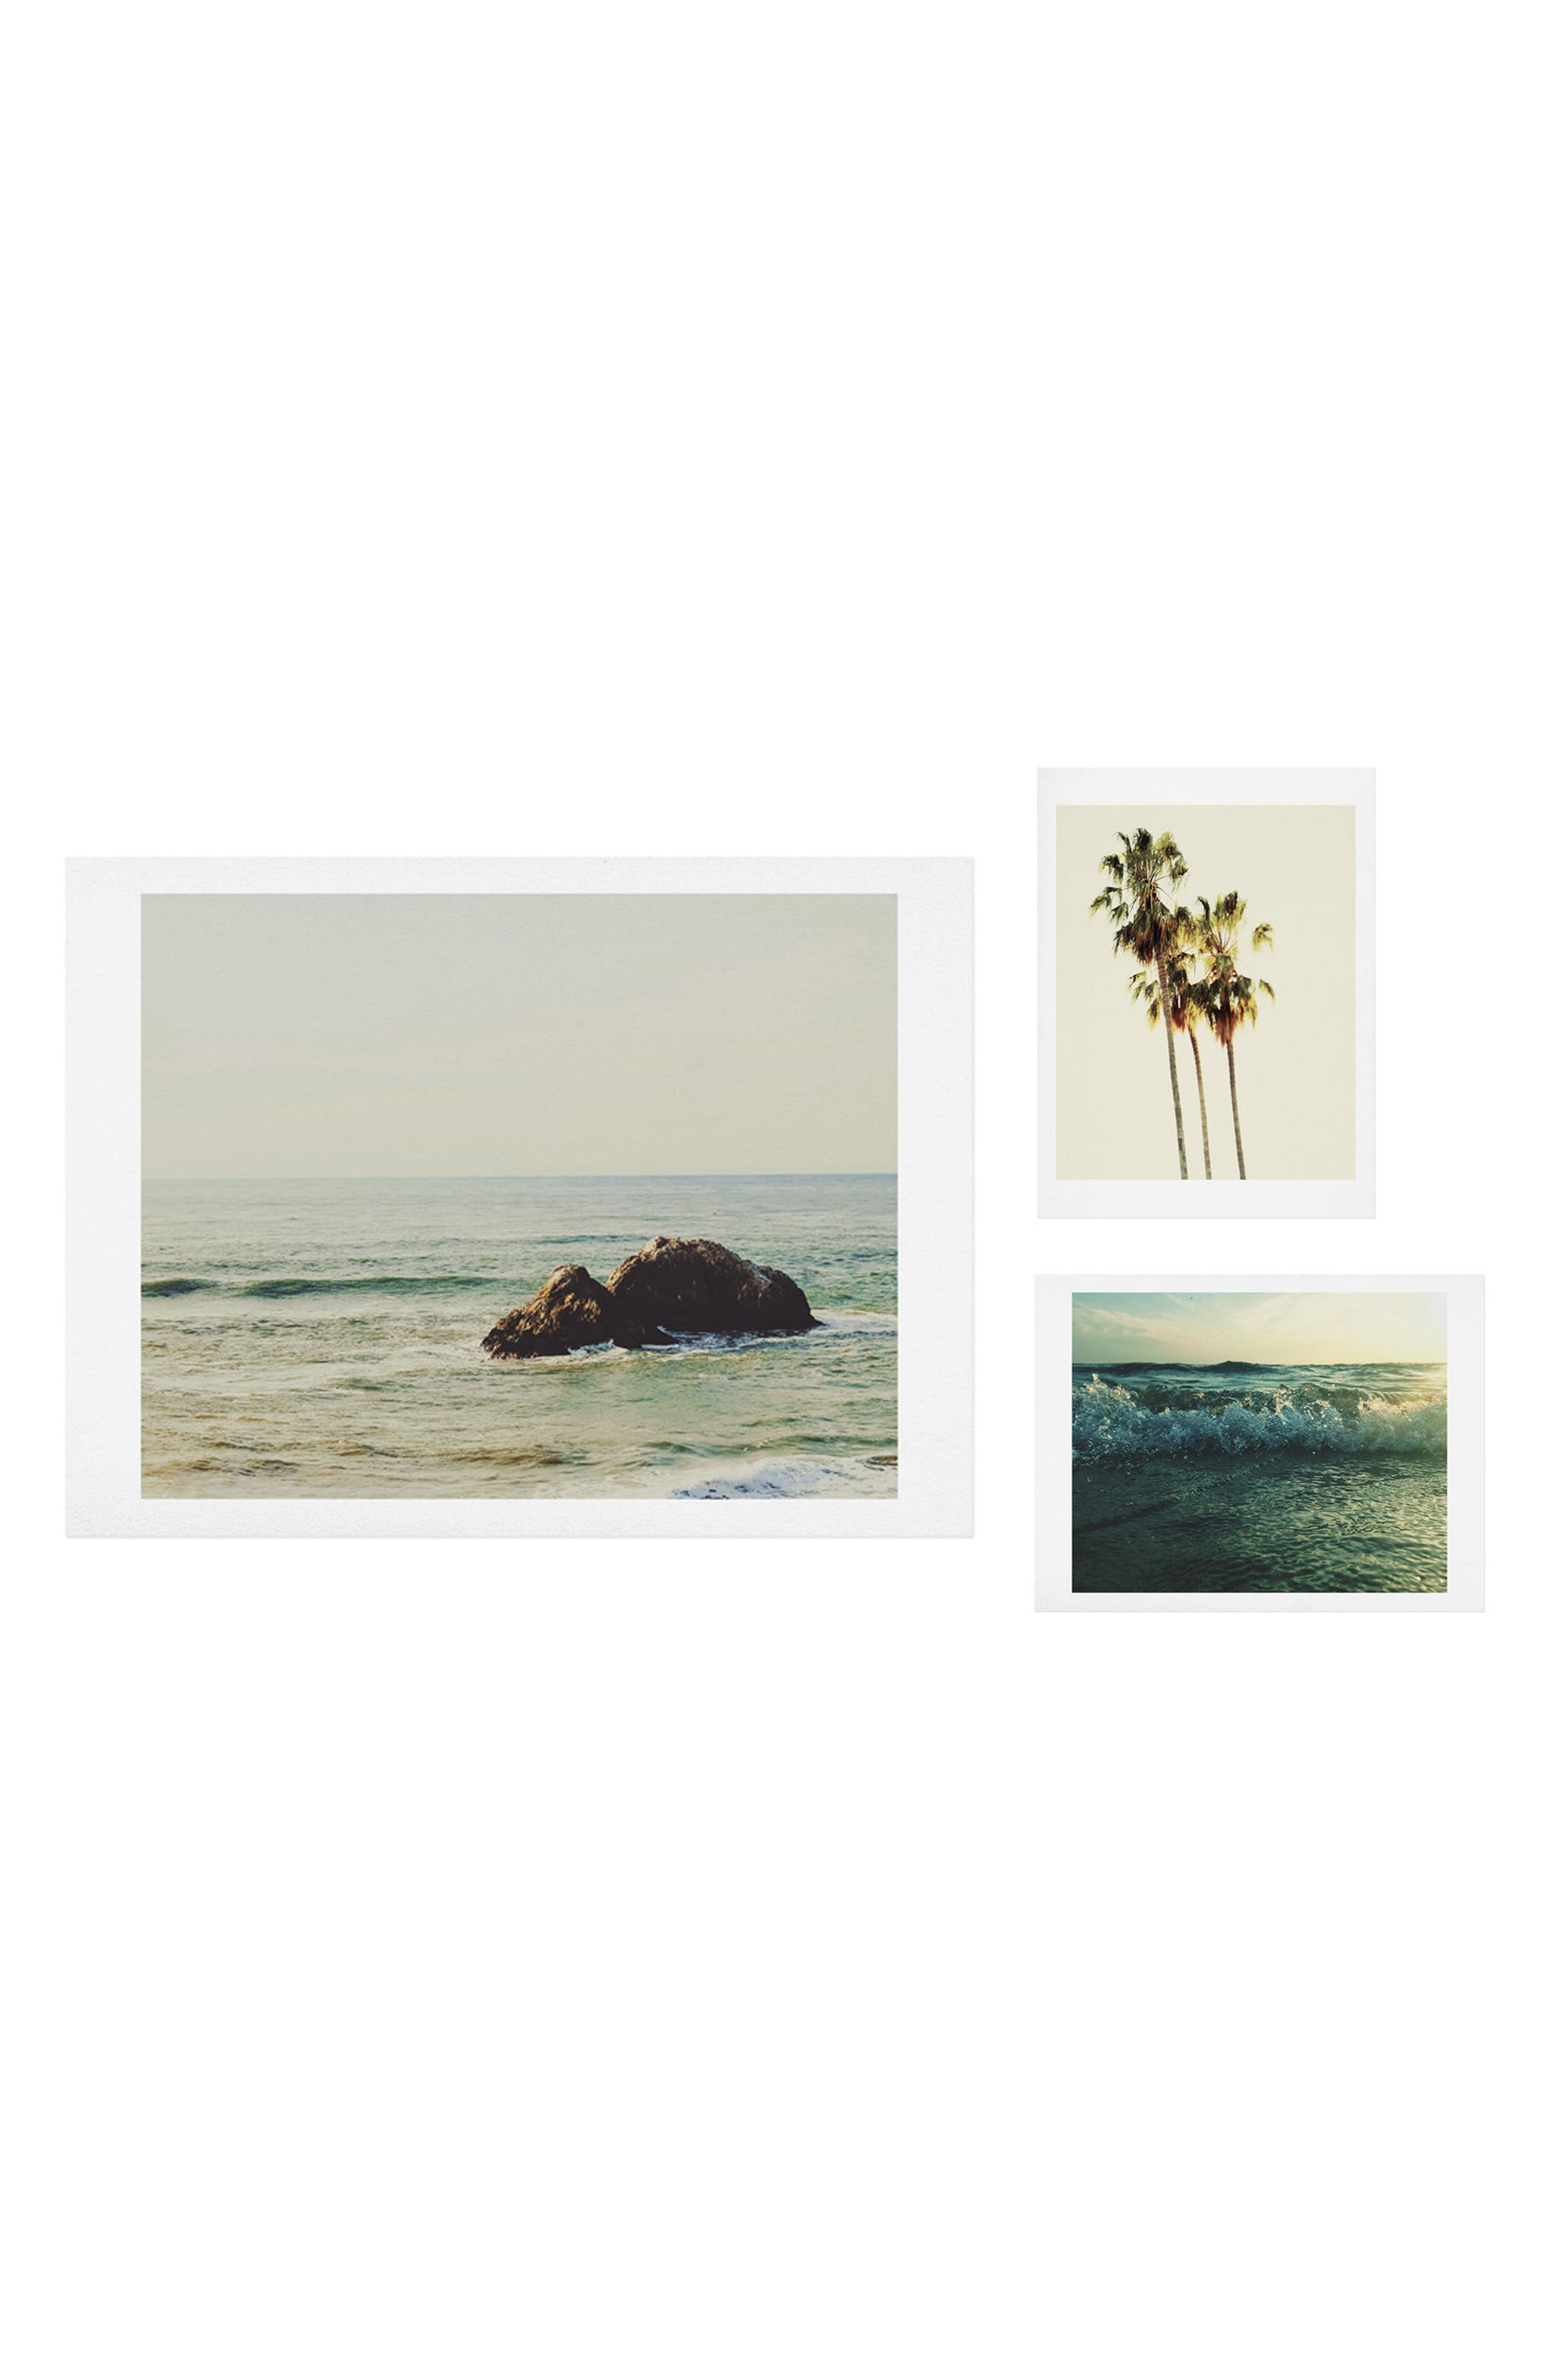 Ocean Calling 3-Piece Gallery Wall Art Print Set,                             Main thumbnail 1, color,                             Green/ Blue